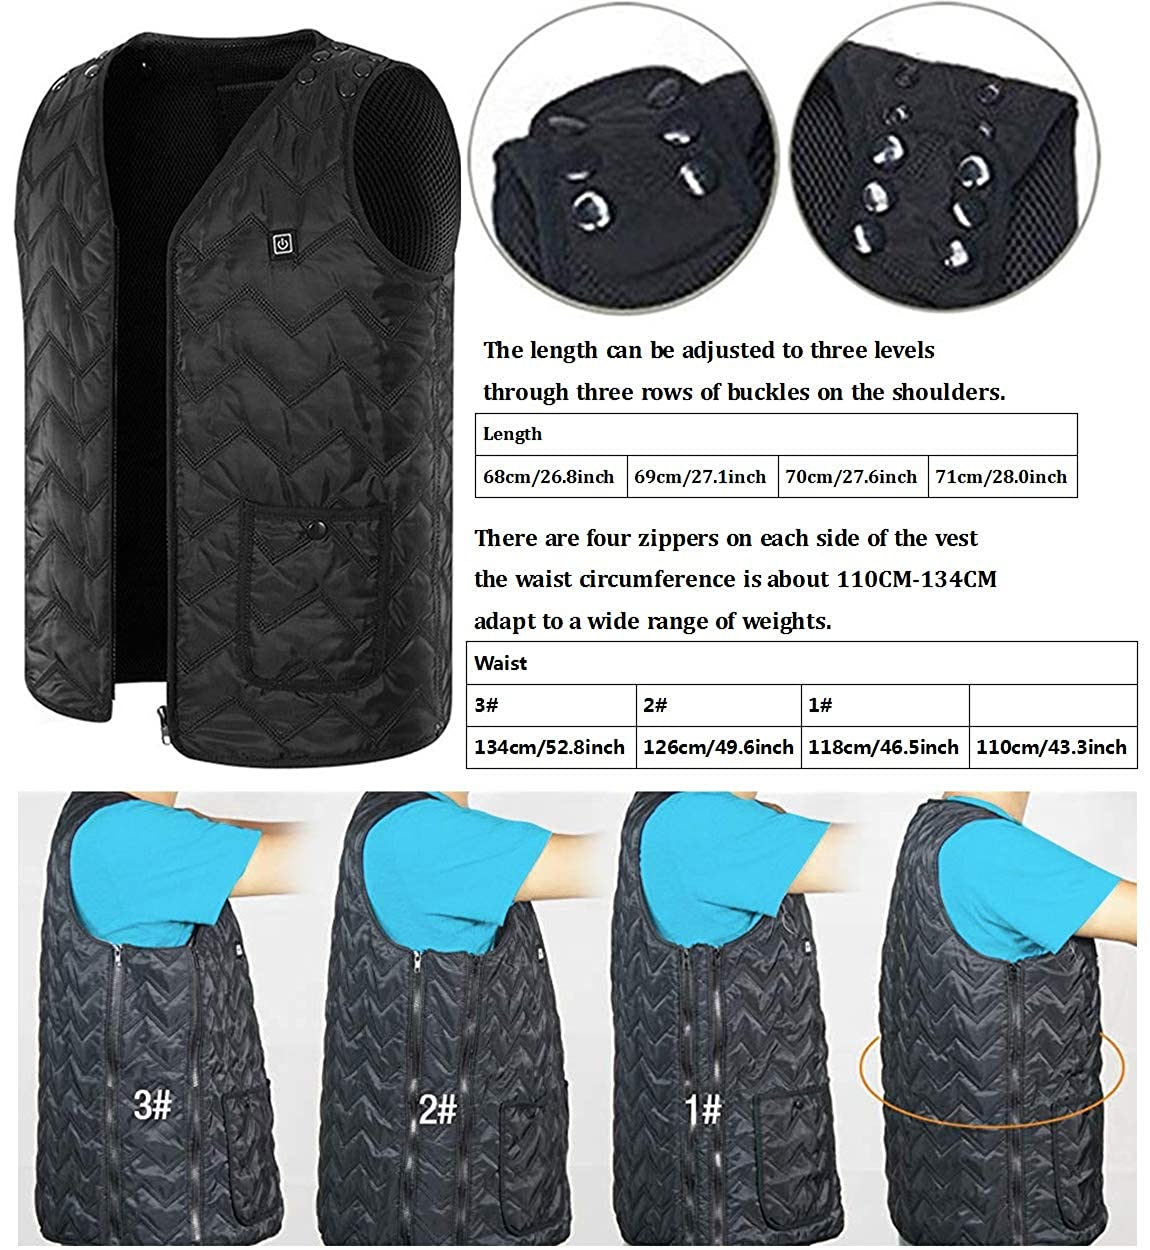 Heated Vest, Washable Size Adjustable USB Charging Heated Warm Vest for Outdoor Camping Hiking Golf Battery Not Included Black